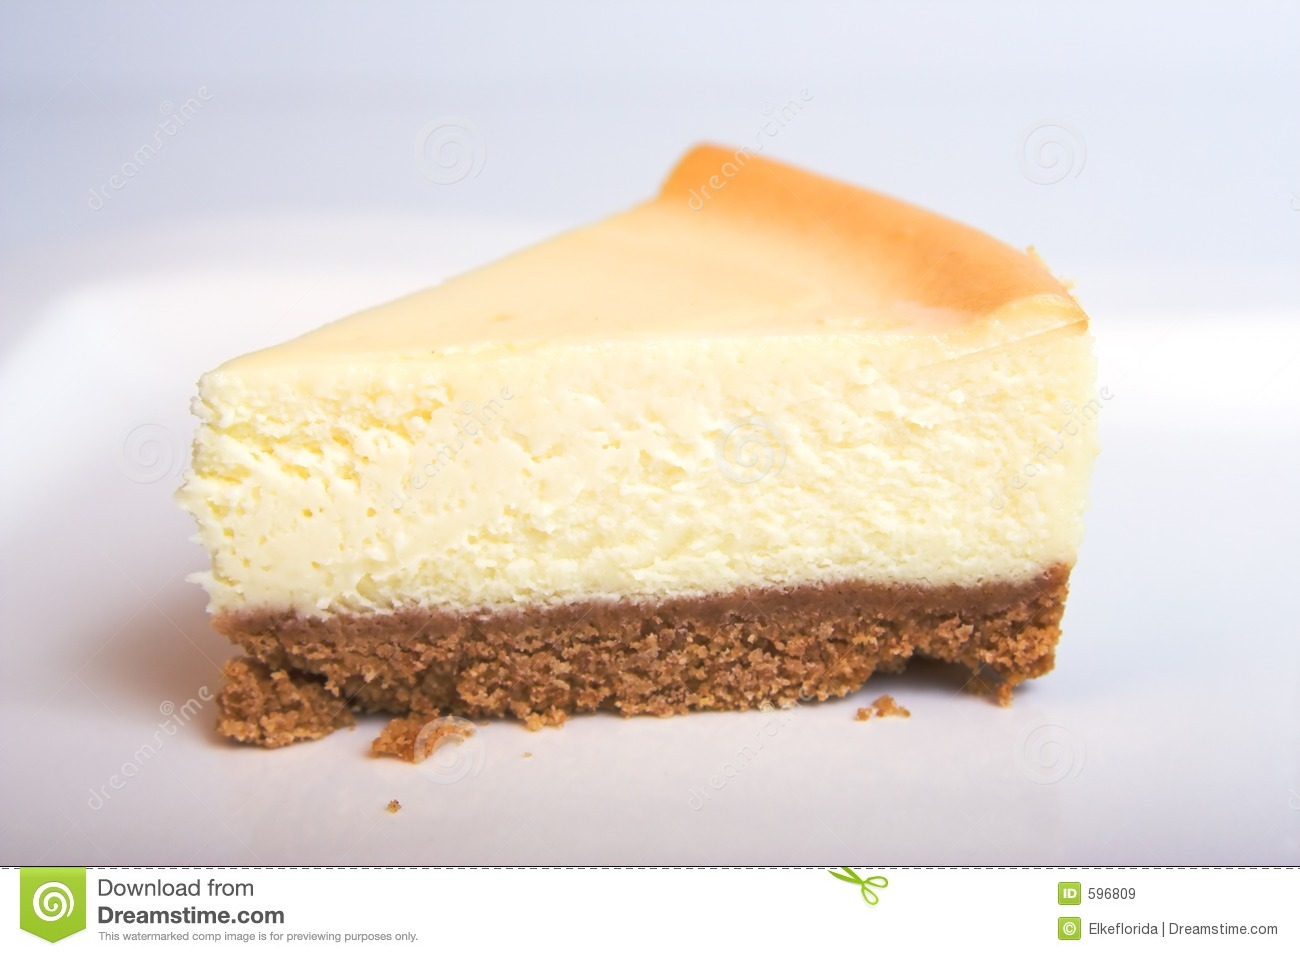 Cheesecake Royalty Free Stock Images - Image: 596809